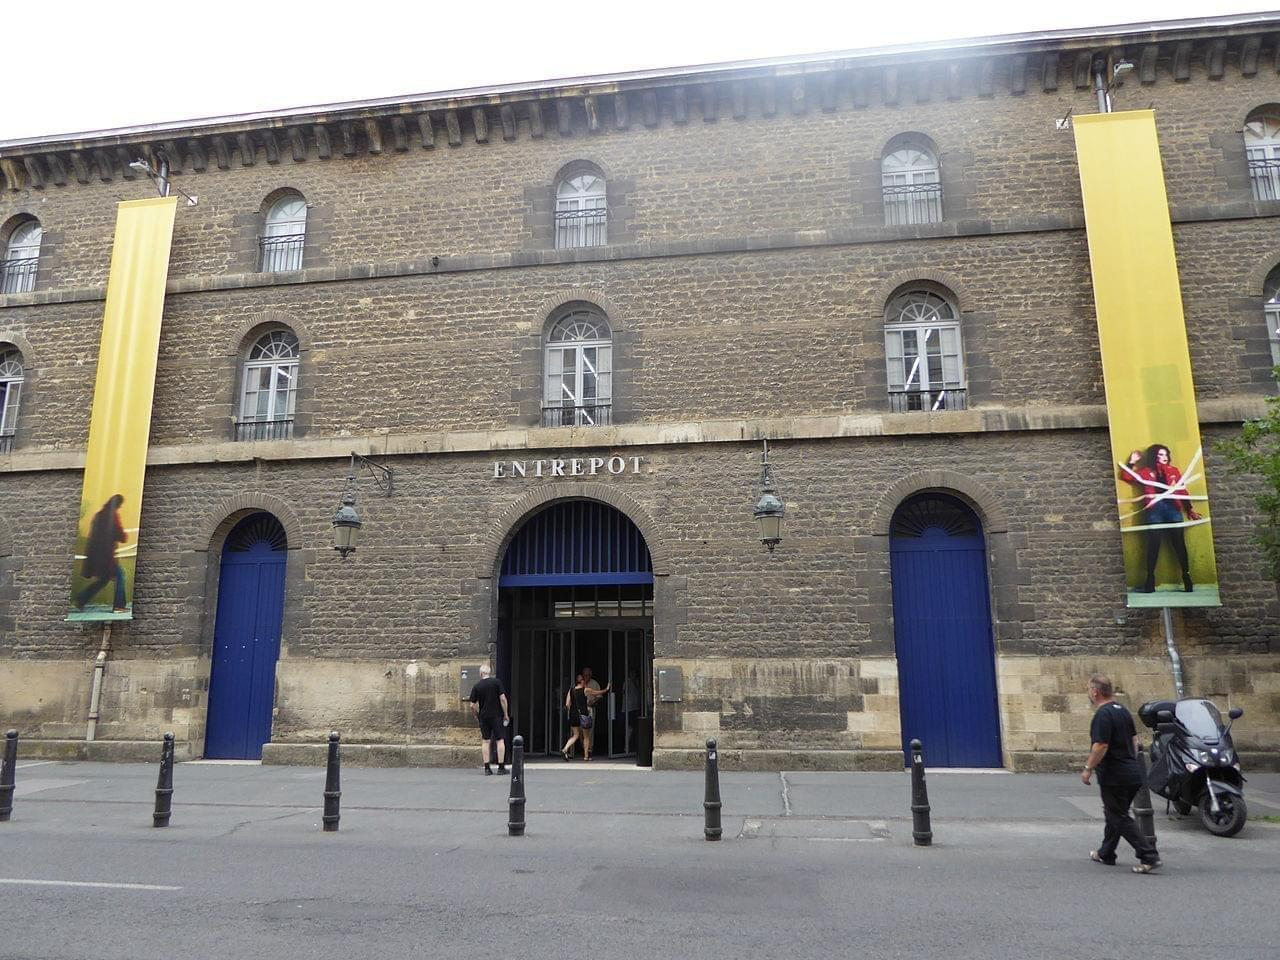 Photo CAPC, musée d'art contemporain de Bordeaux